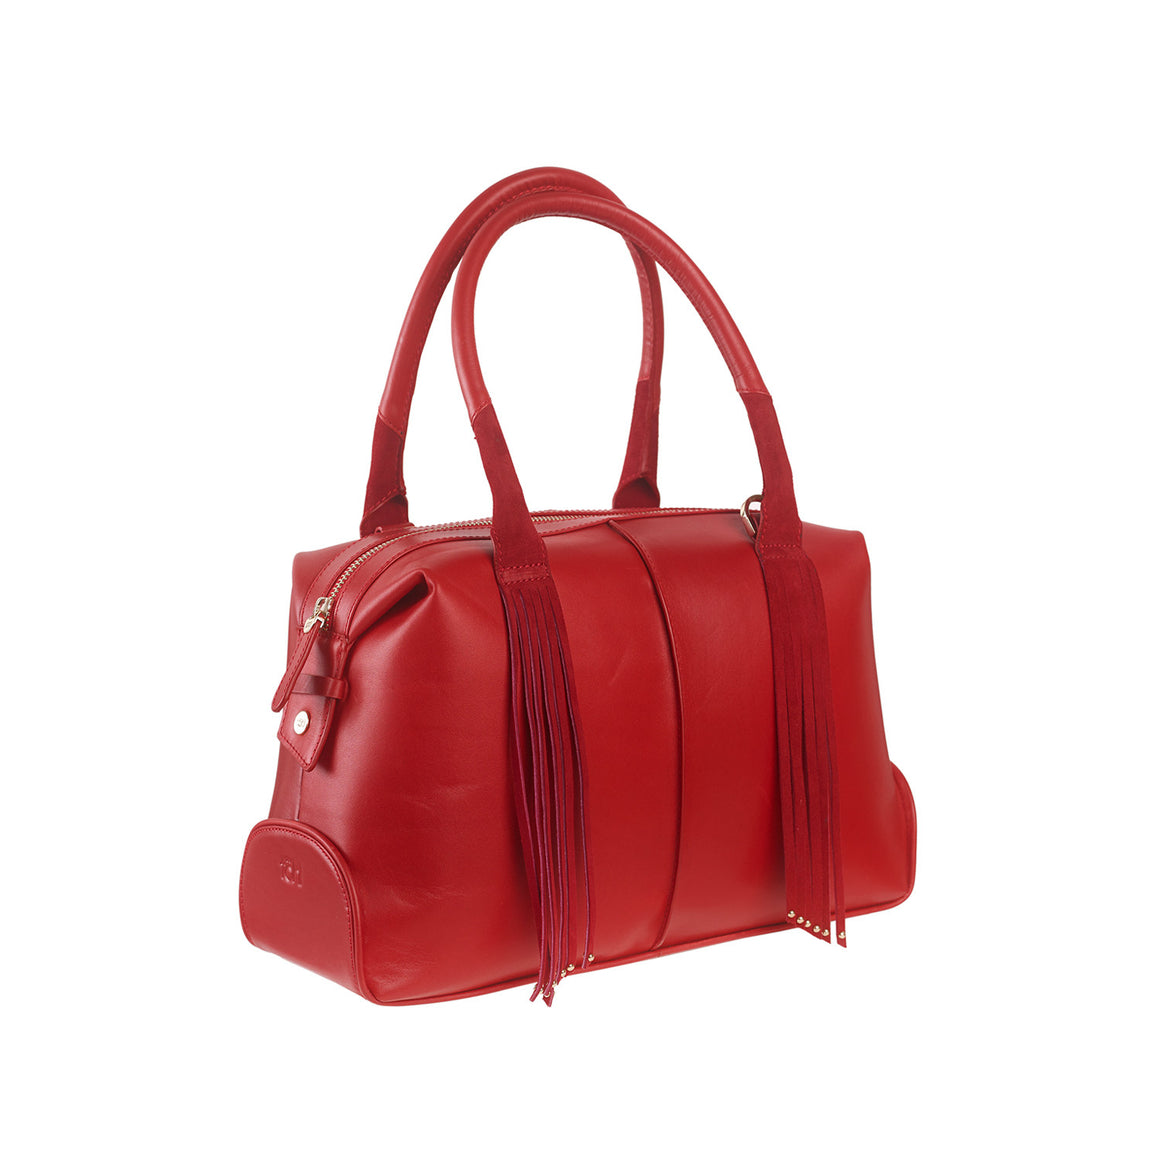 SB 0013 - TOHL ROBYN WOMEN'S DAY BAG - SPICE RED